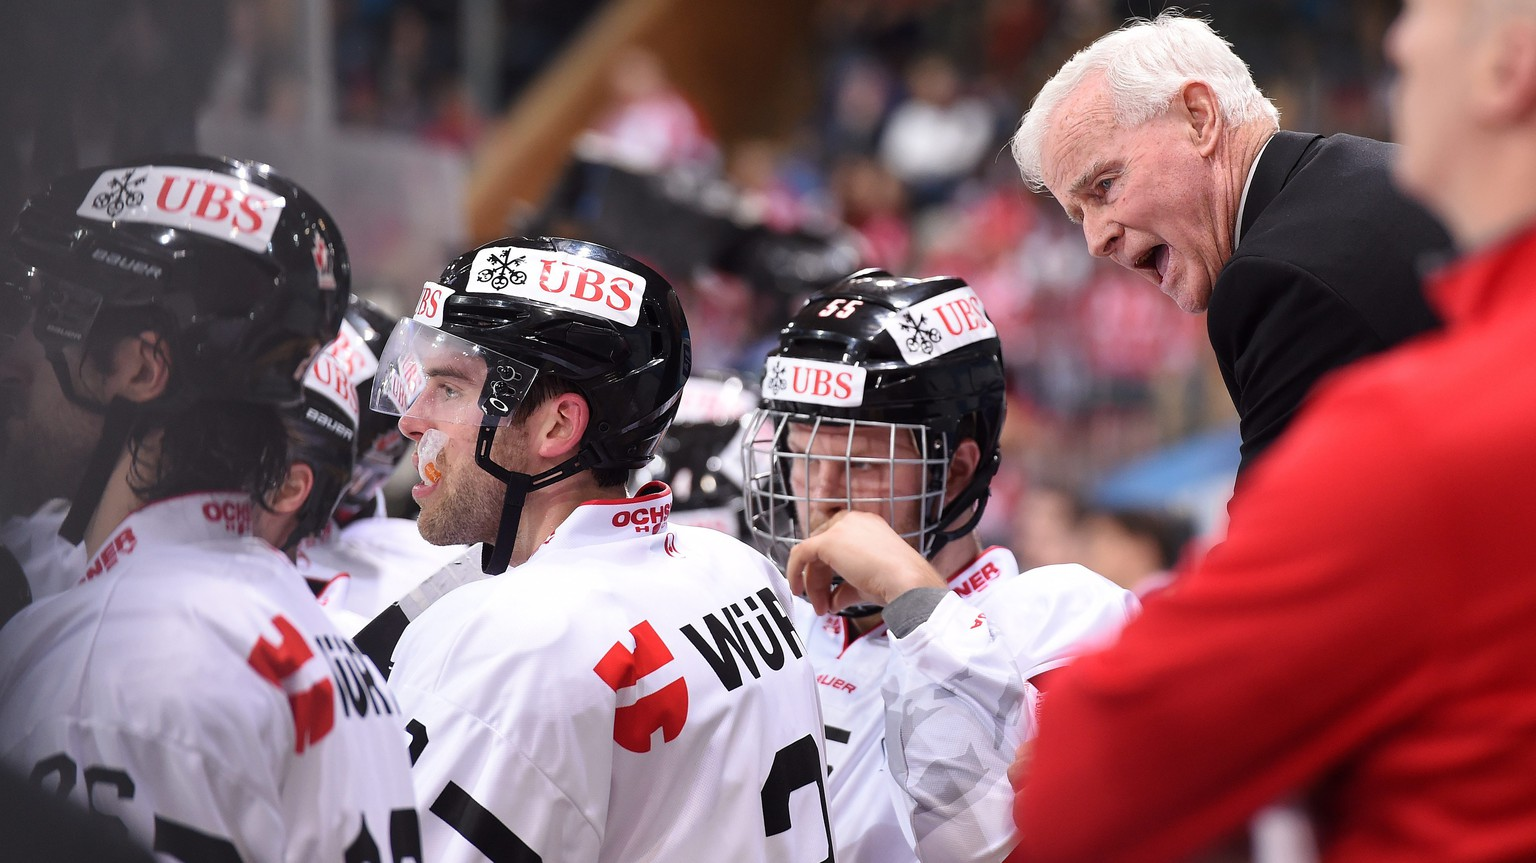 epa05688936 Canadas Assistant Coach Dave King, during the game between HK Dinamo Minsk and Team Canada  at the 90th Spengler Cup ice hockey tournament in Davos, Switzerland, Monday, December 26, 2016.  EPA/MELANIE DUCHENE